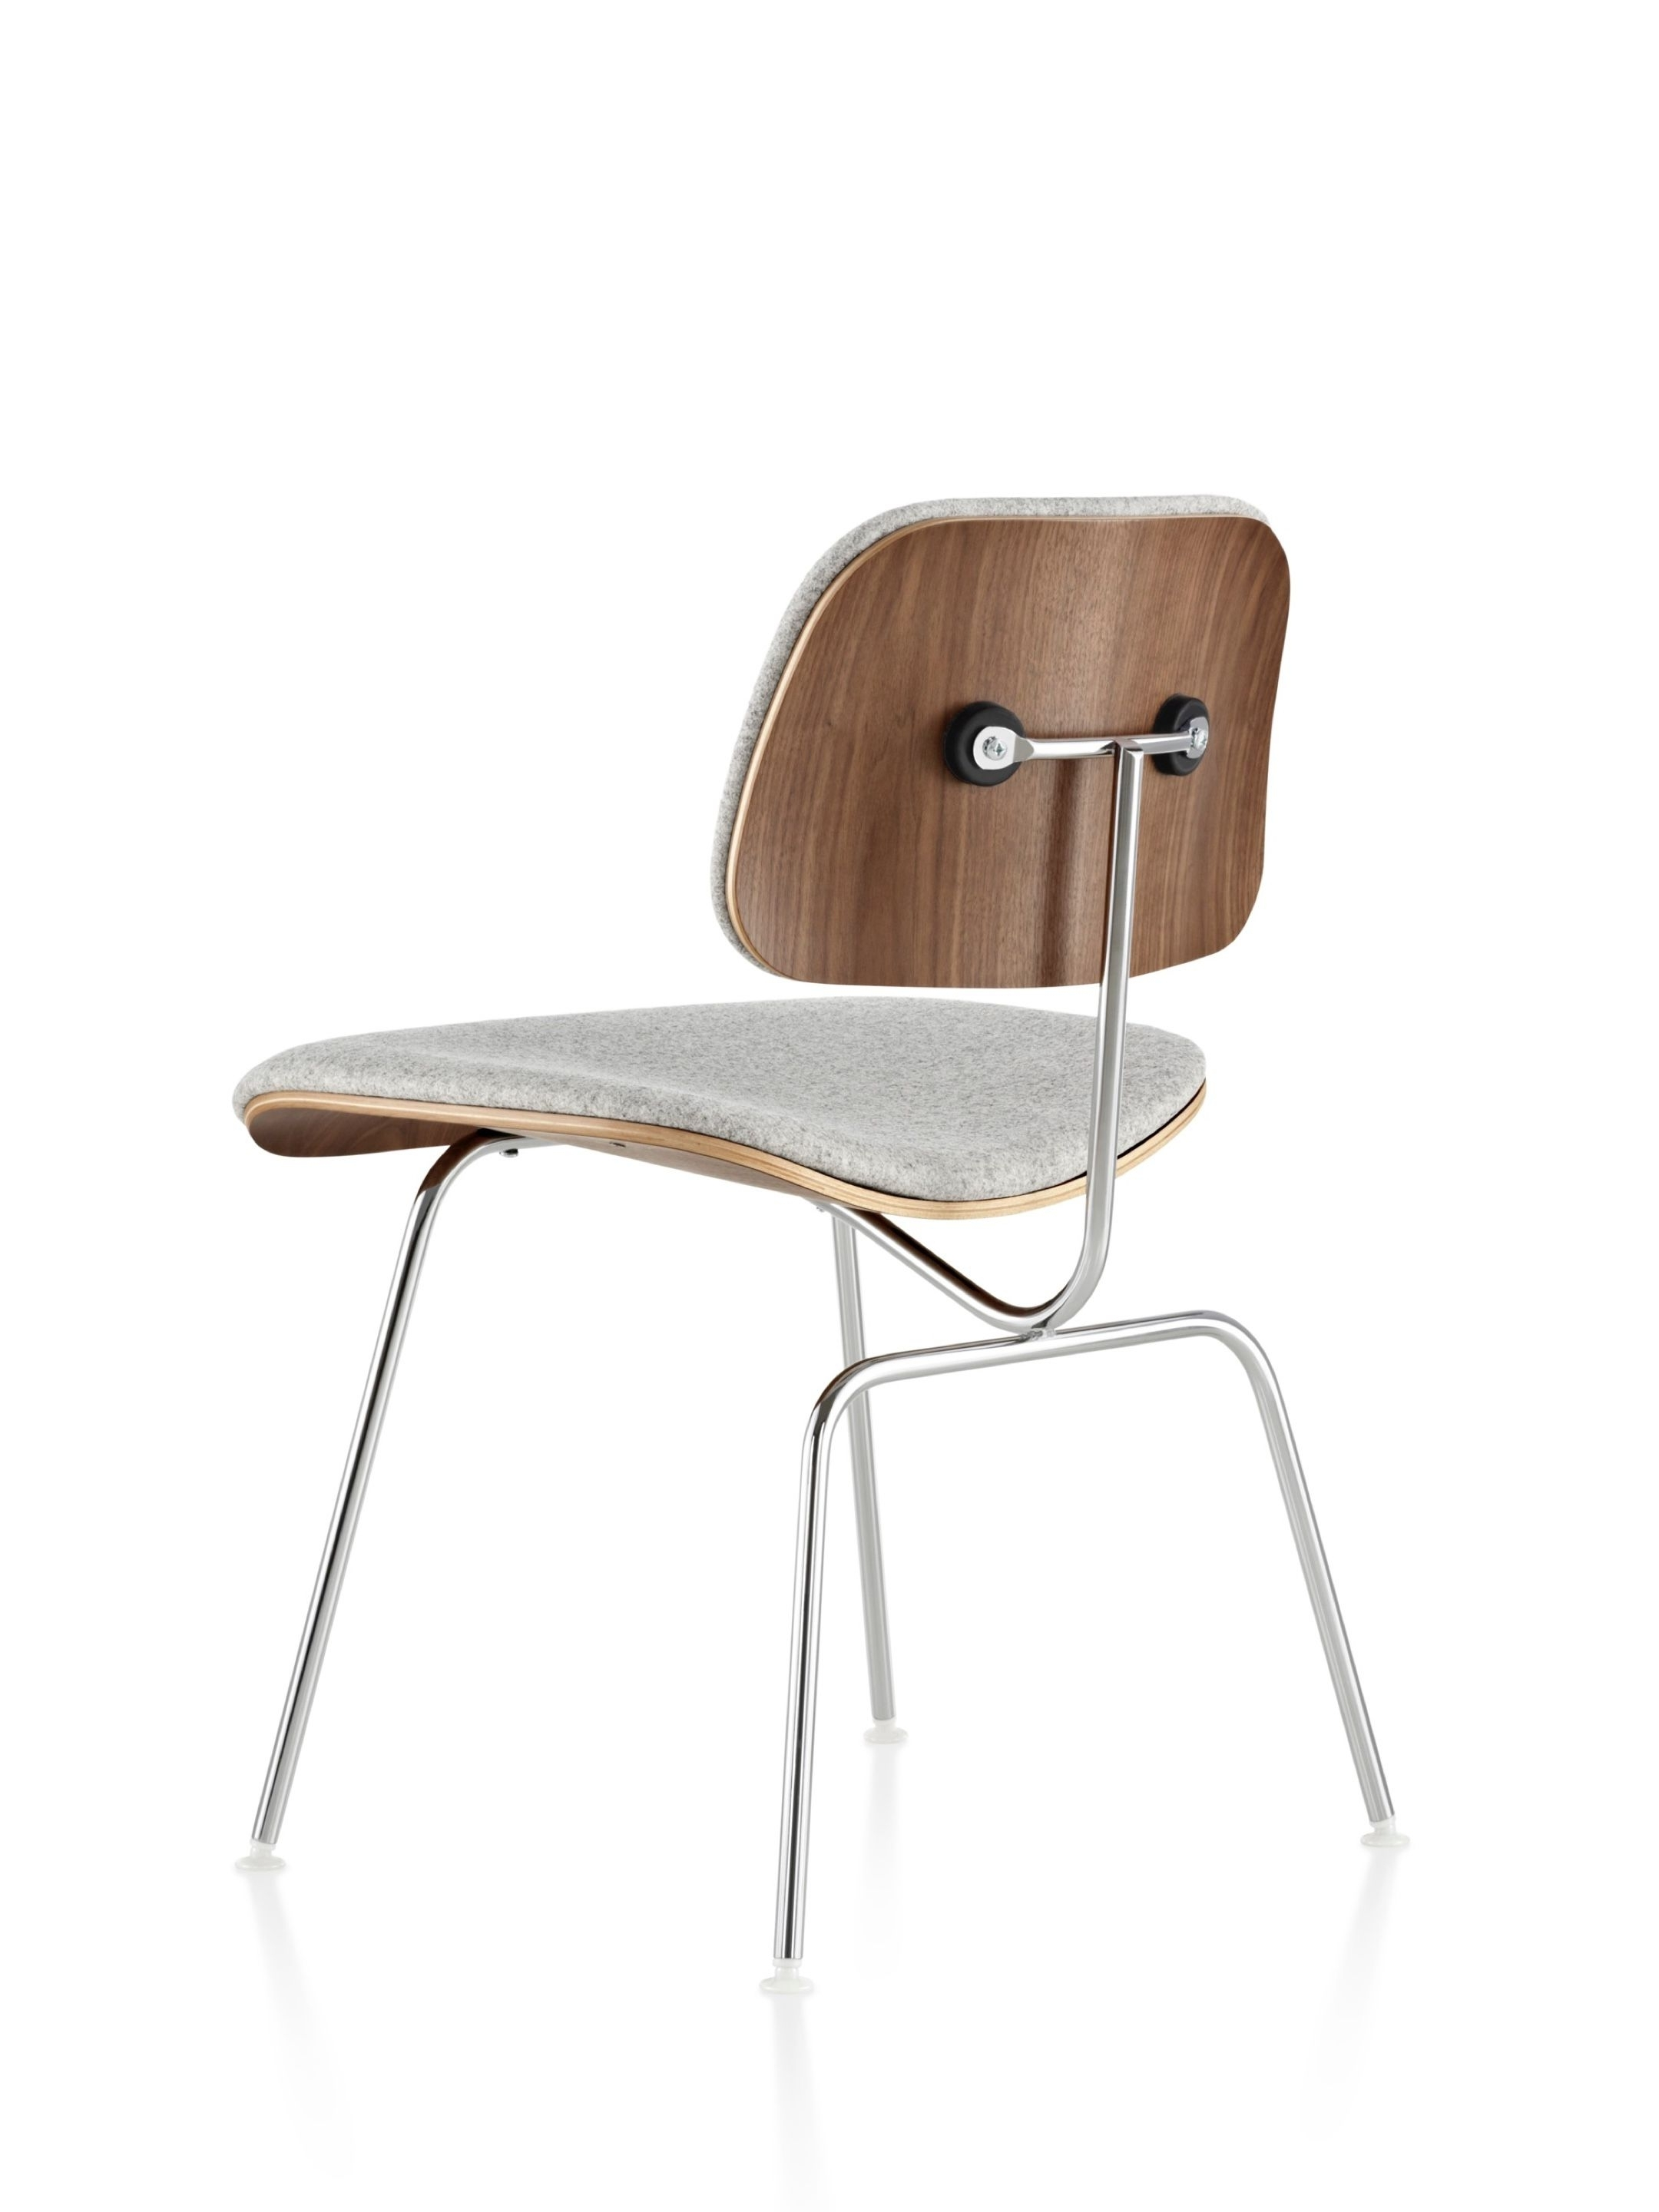 Plywood & Metal Brown Dining Chairs Inside Most Current Eames Molded Plywood Dining Chair With Metal Base Upholstered In (View 4 of 20)